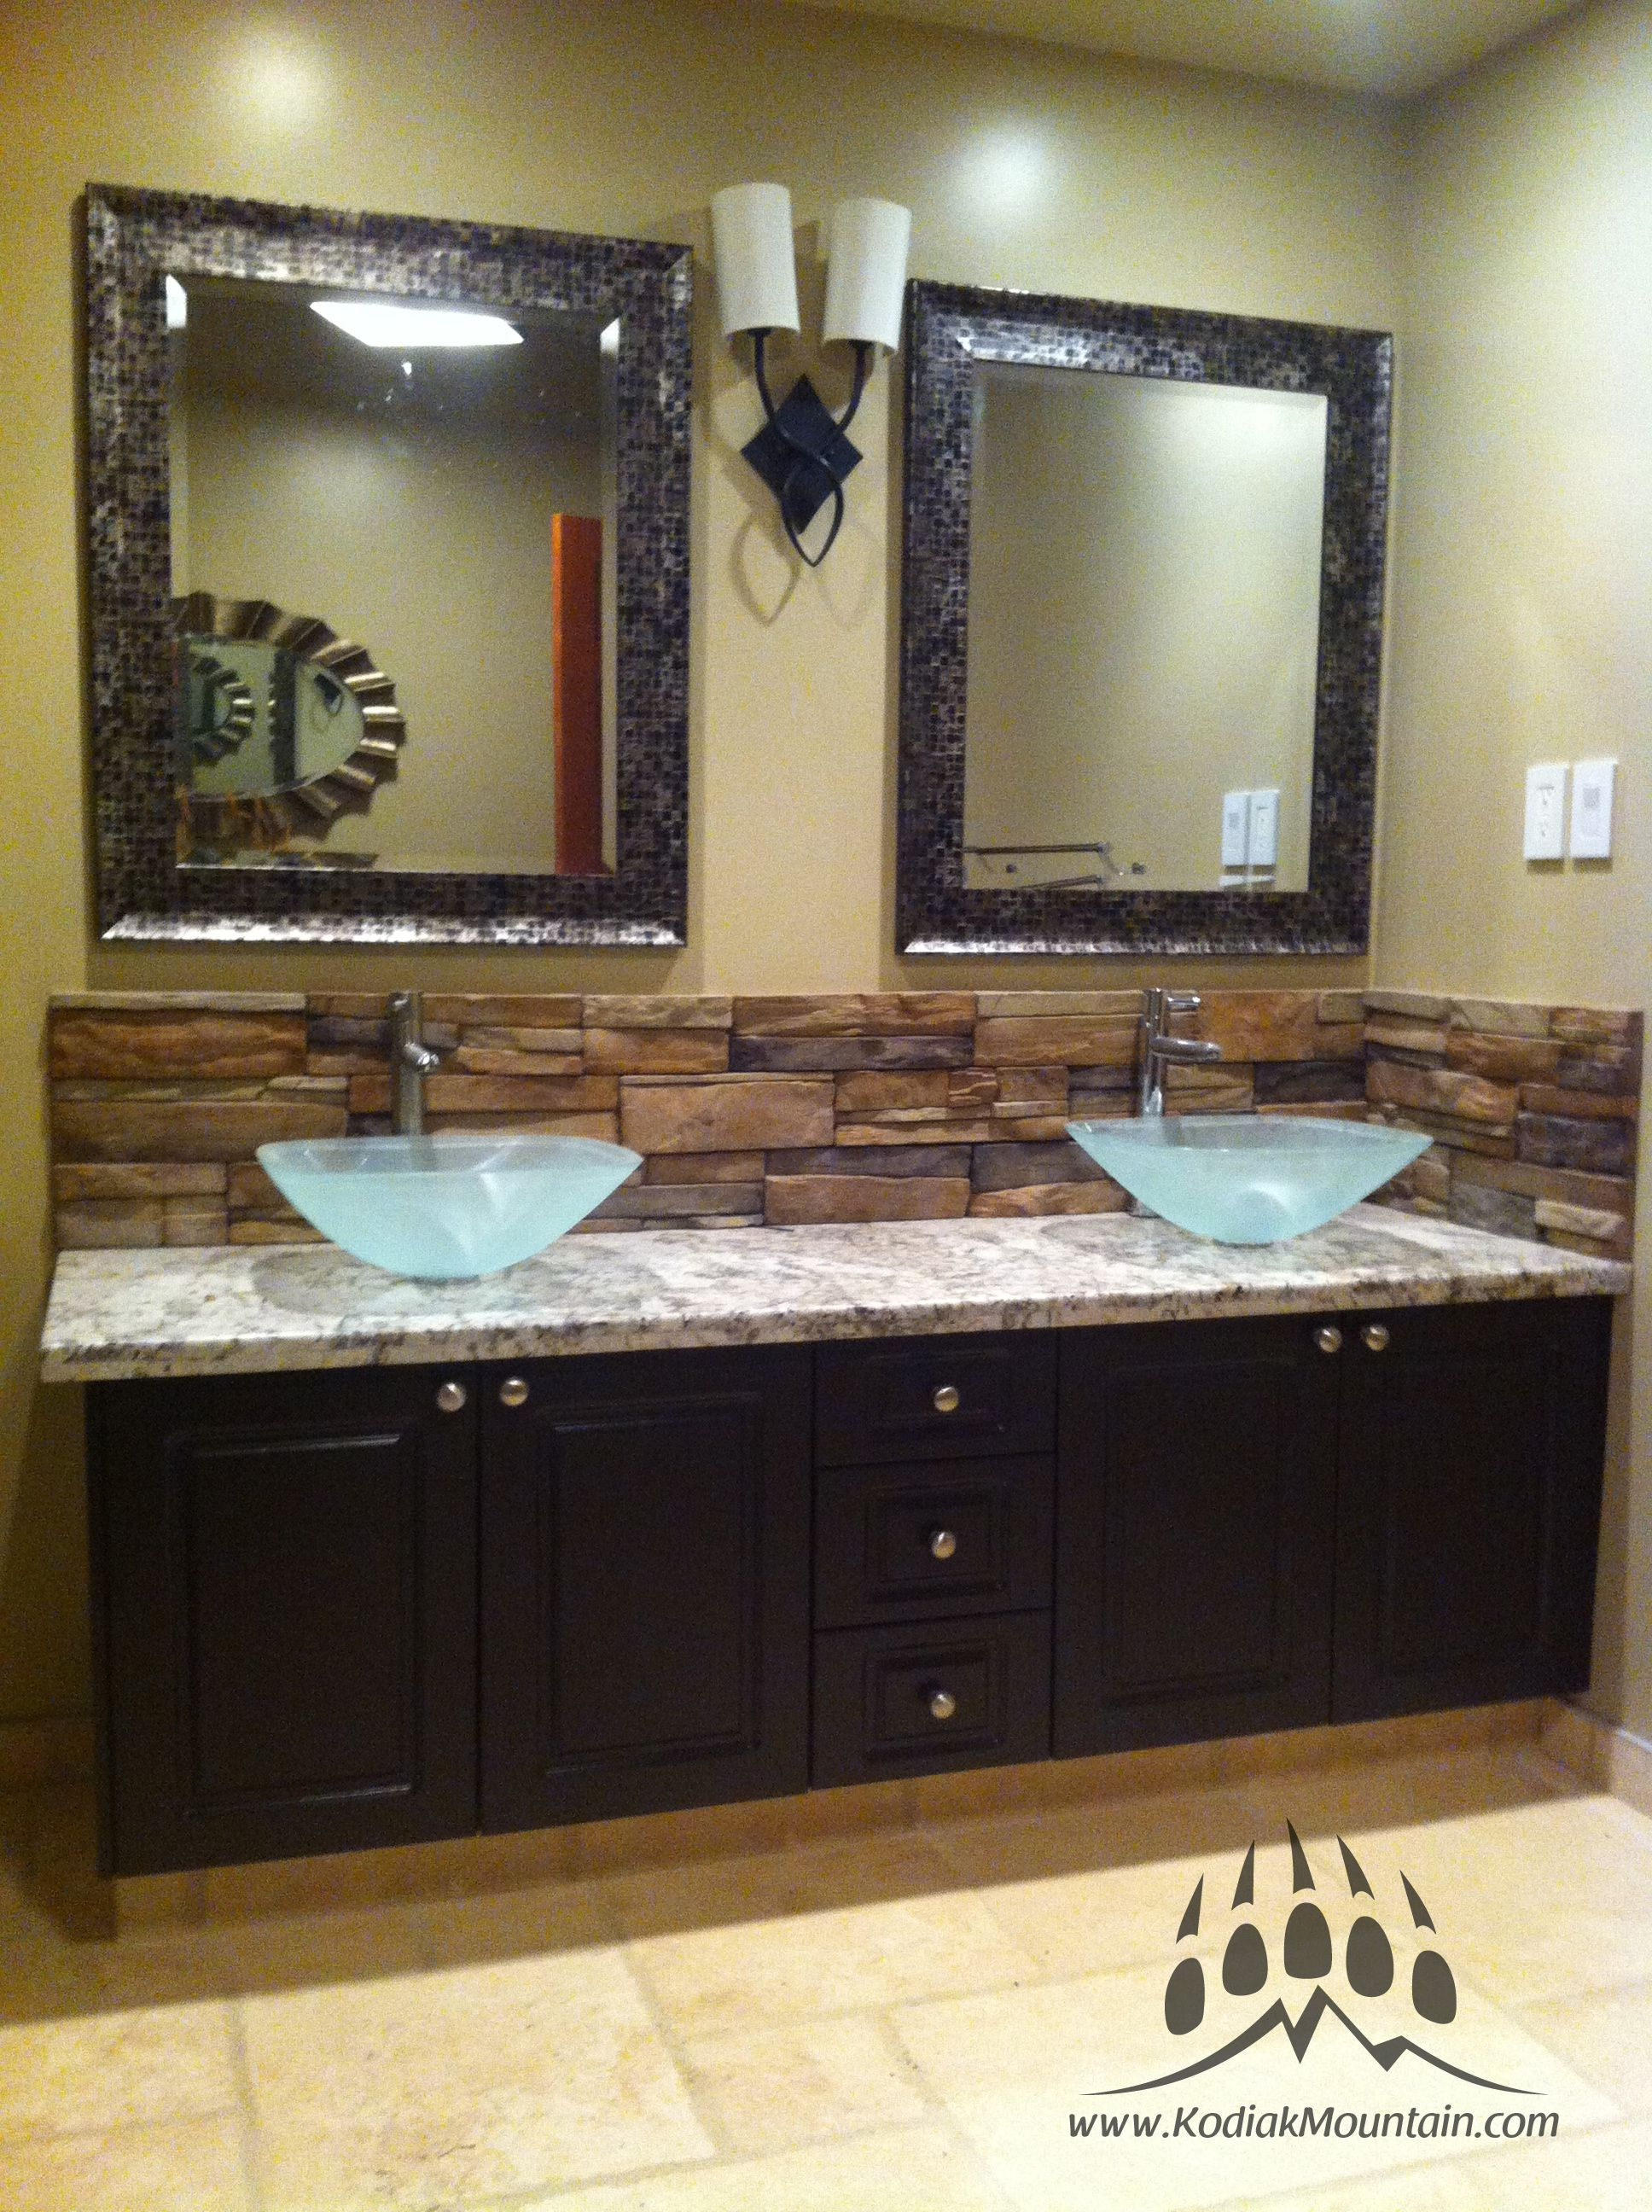 Bathroom Vanities Utah bathroom back splash | kodiak mountain stone | frontier ledge